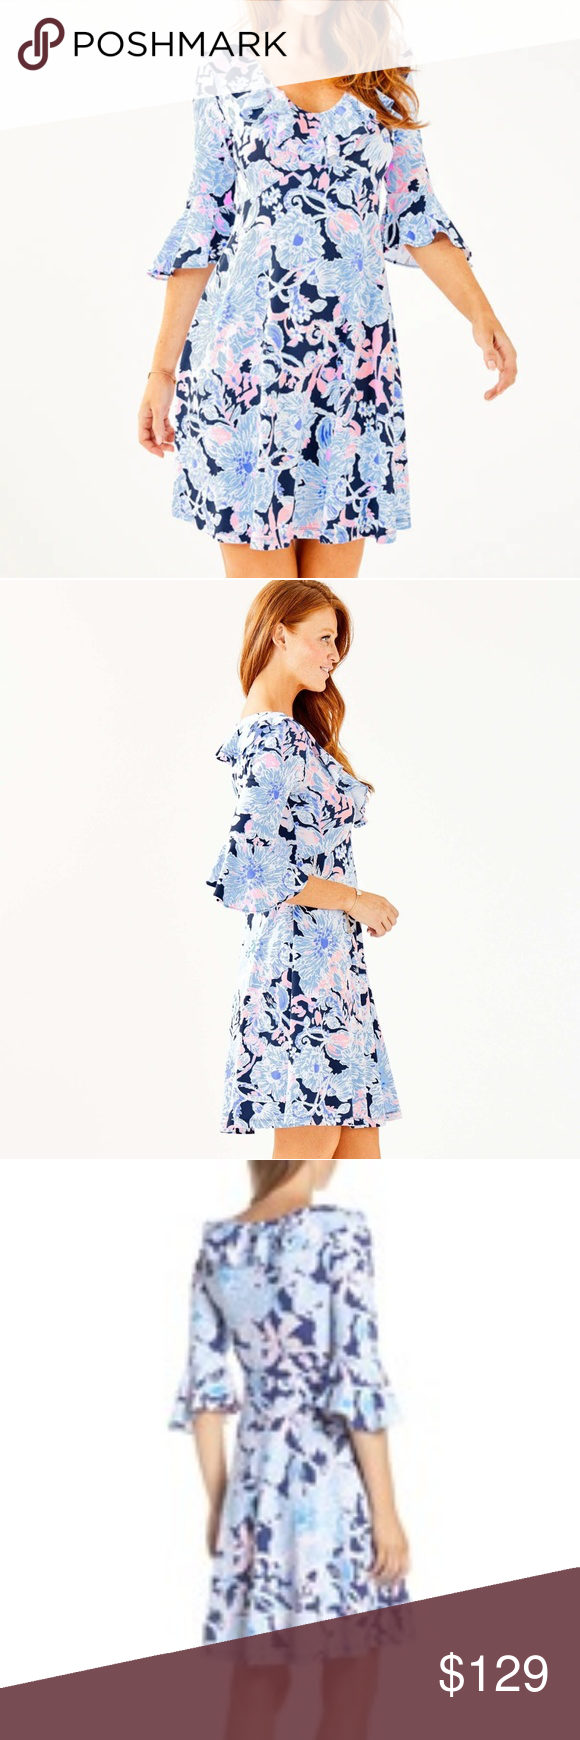 """🌴 NWT Lilly Pulitzer Stirling Dress NEW with tags Stirling Dress in Bright Navy Amore Please.  Impromptu date night? Sushi with friends? The Stirling dress is a feminine knit fit and flare dress with flounce detail along the neckline and sleeves. You get all the comfort of a knit without sacrificing any style!  V-Neck Fit And Flare Dress With Flounce At Neckline And Sleeves.  38"""" From Top Of Shoulder To Hem.  Length: Knee Length.  Rayon Spandex Jersey (96% Rayon, 4% Spandex).  Hand Wash Cold. S"""